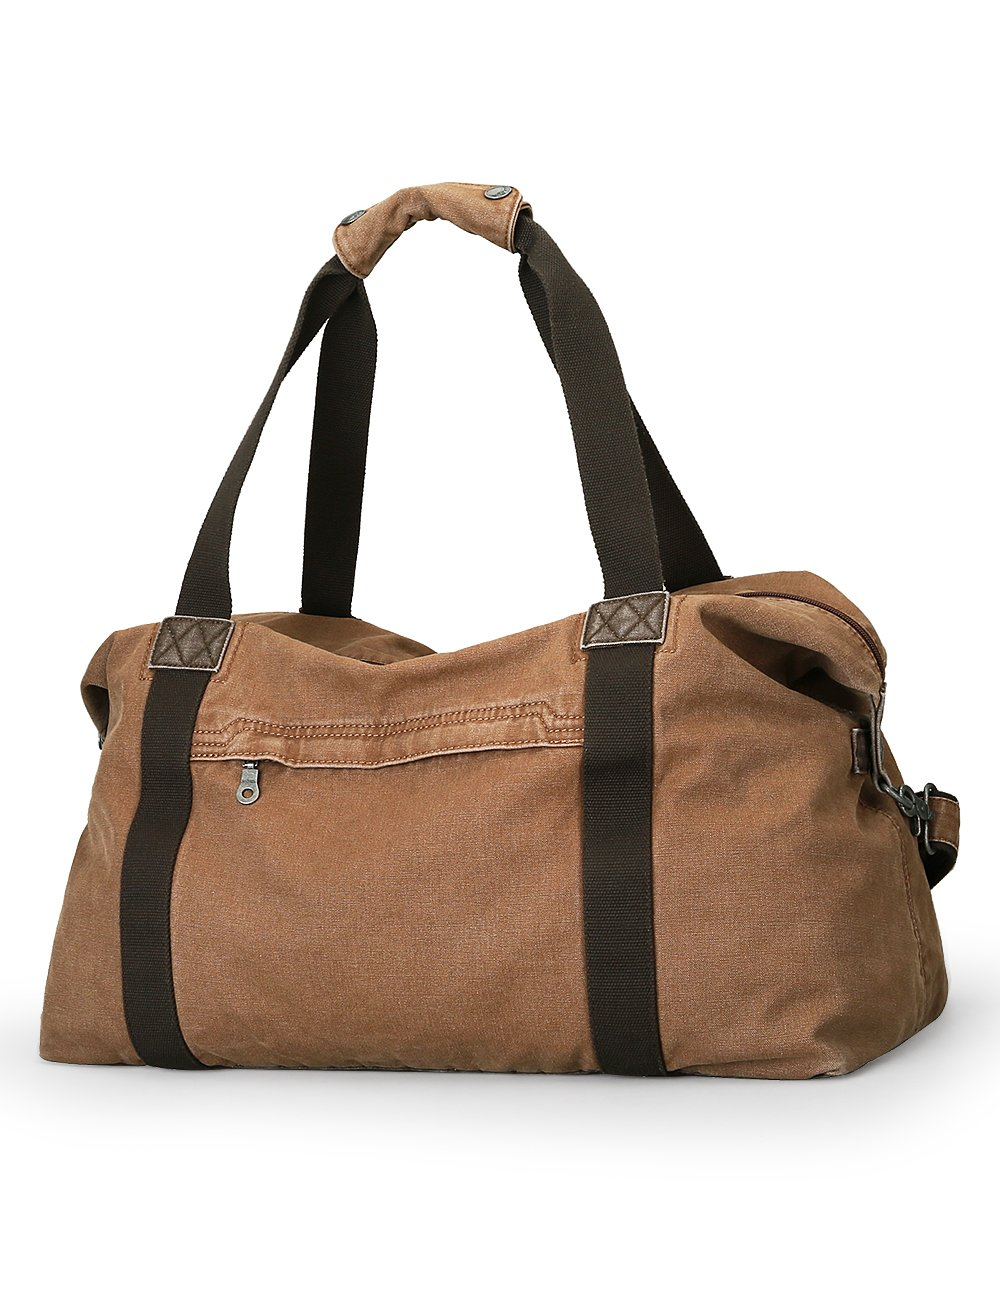 Muzee Oversized Classic Vintage Canvas Travel Duffel Hand Bag Weekender Bag Travel Tote Luggage for men or women (Khaki)